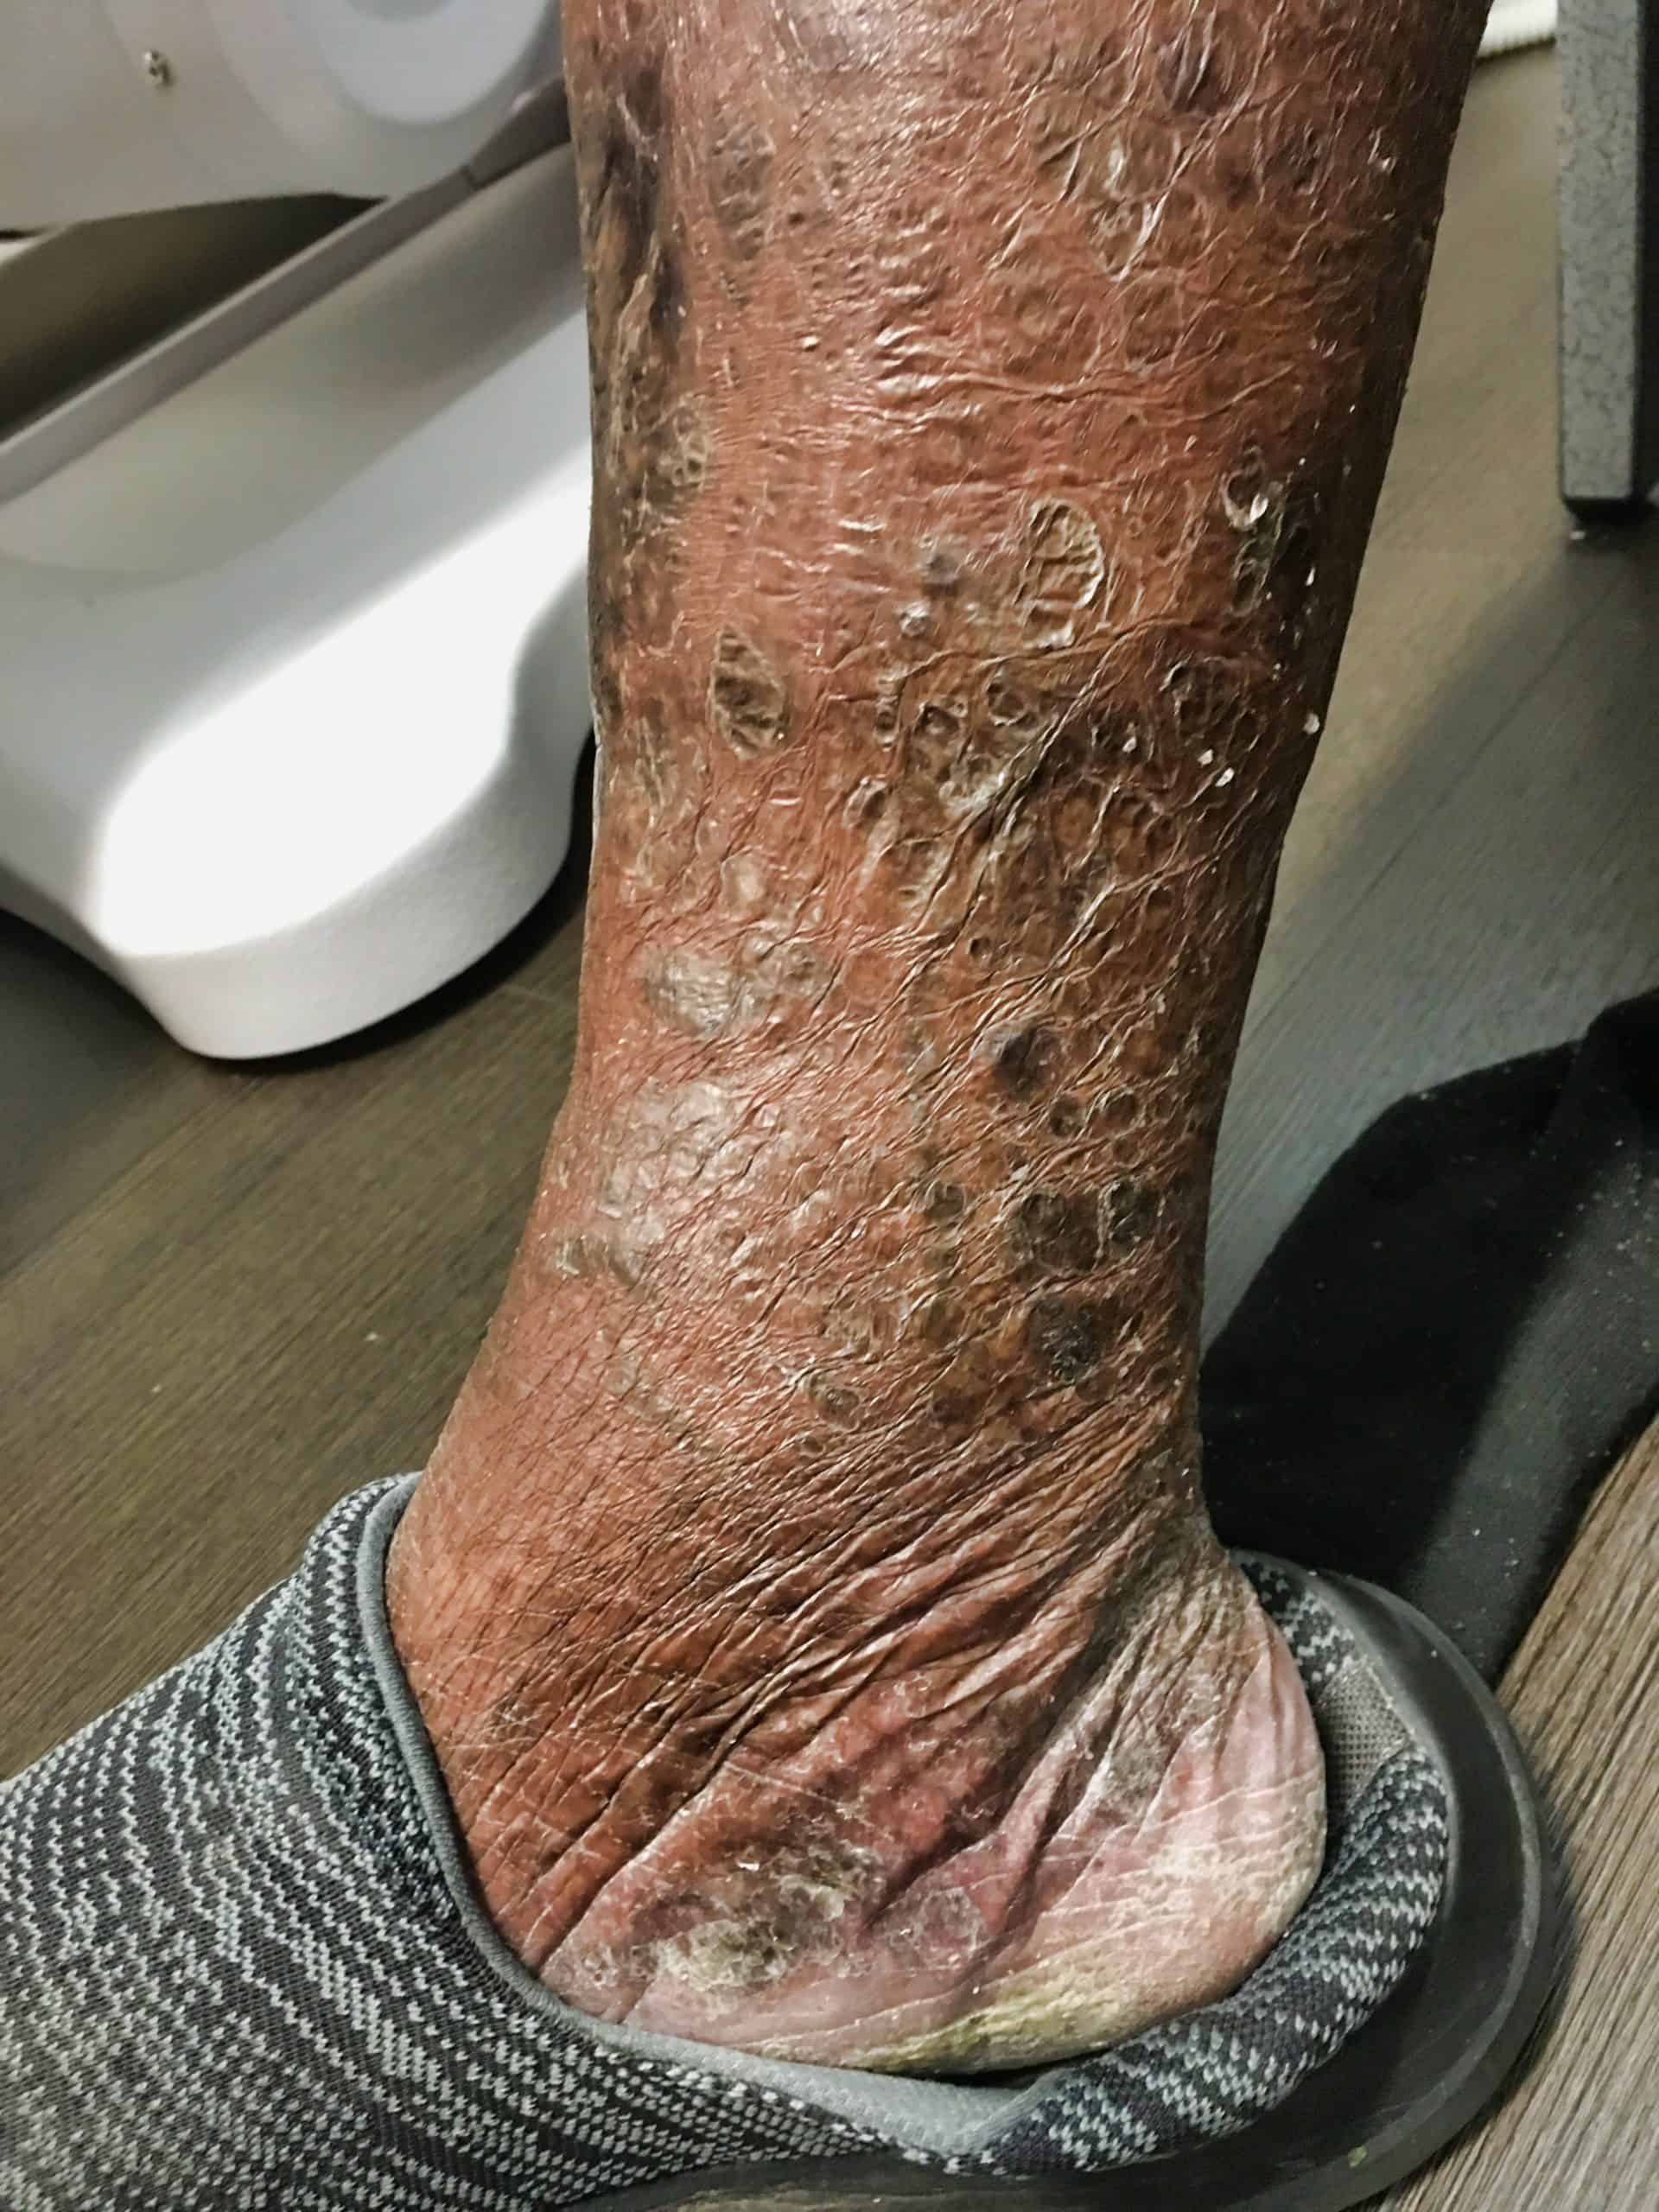 Ankle ulcer and skin changes 3 months after treatment